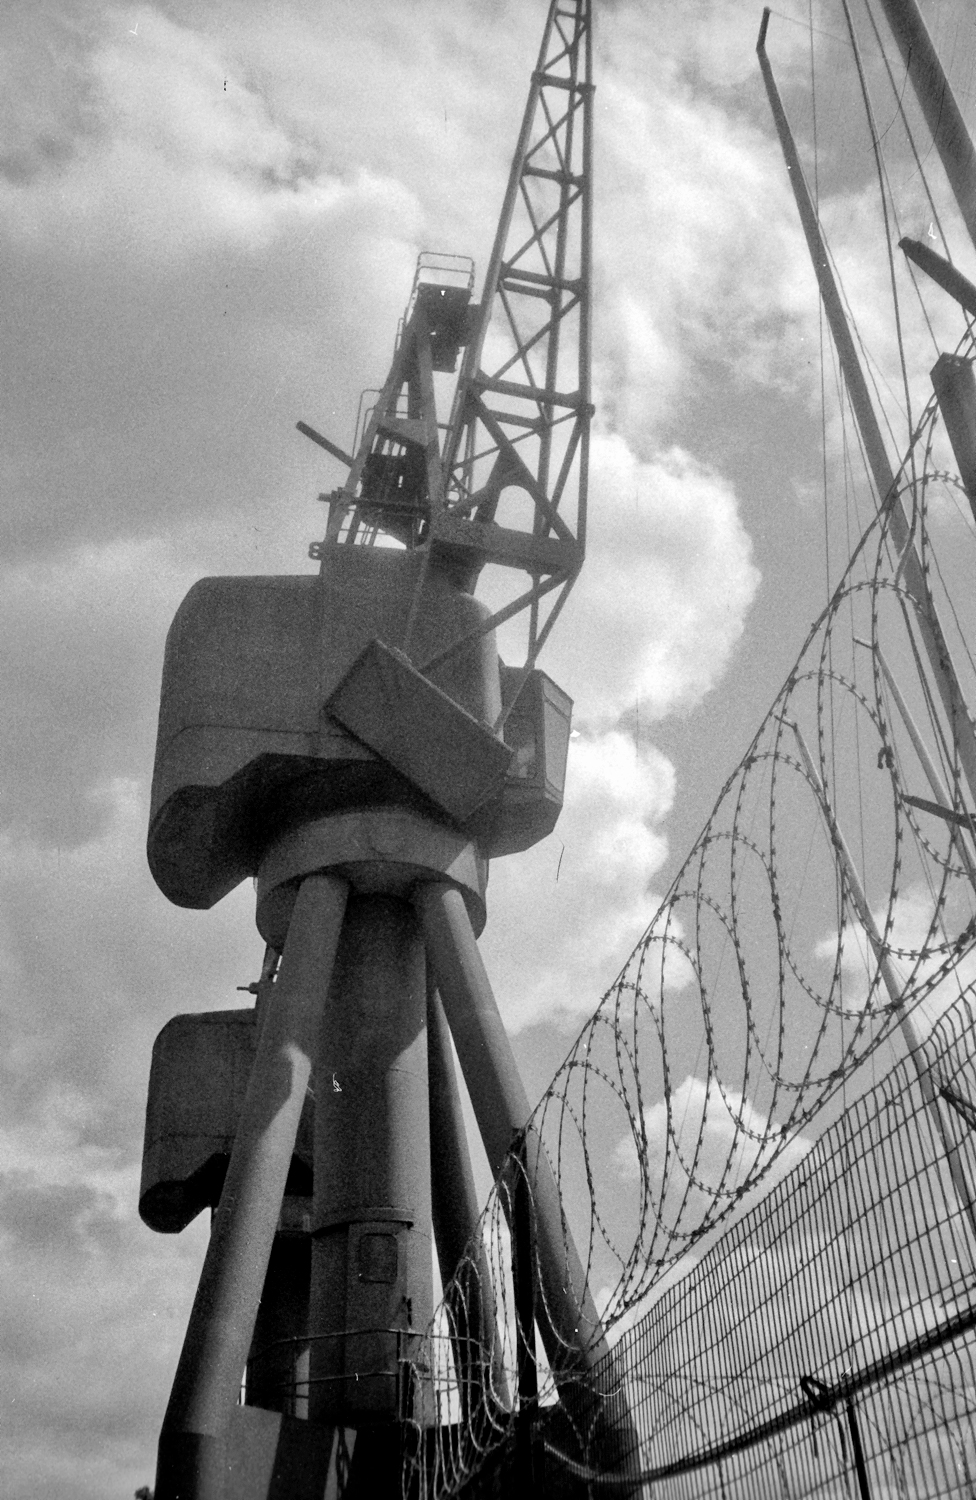 Crane and barbed wire (Pic: Stephen Dowling)